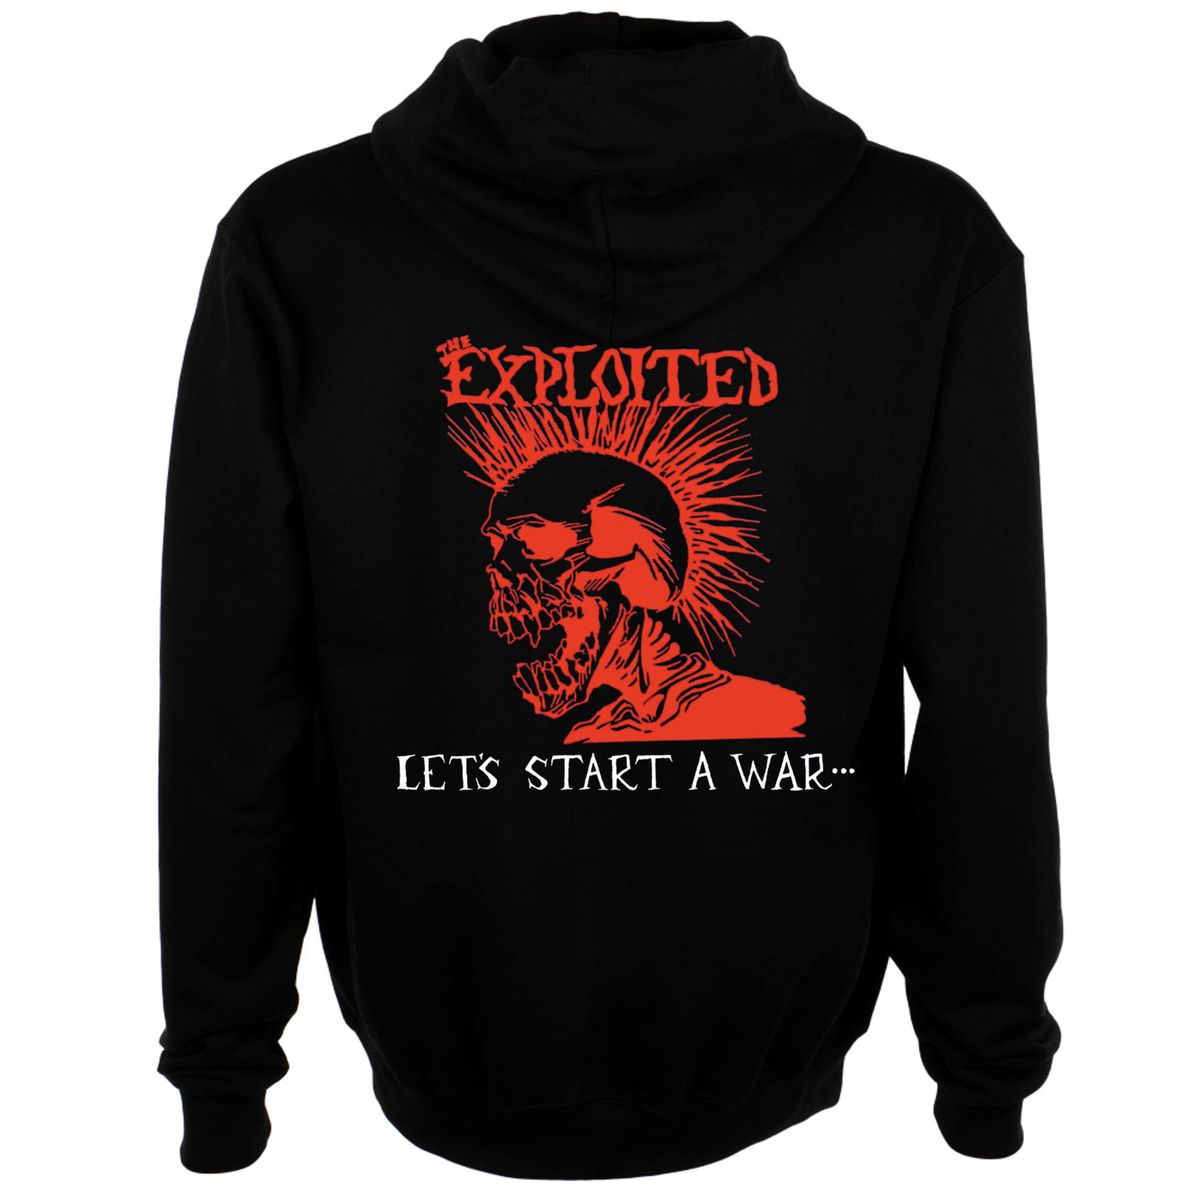 The Exploited Let's Start S War Said Maggie One Day Hoodie